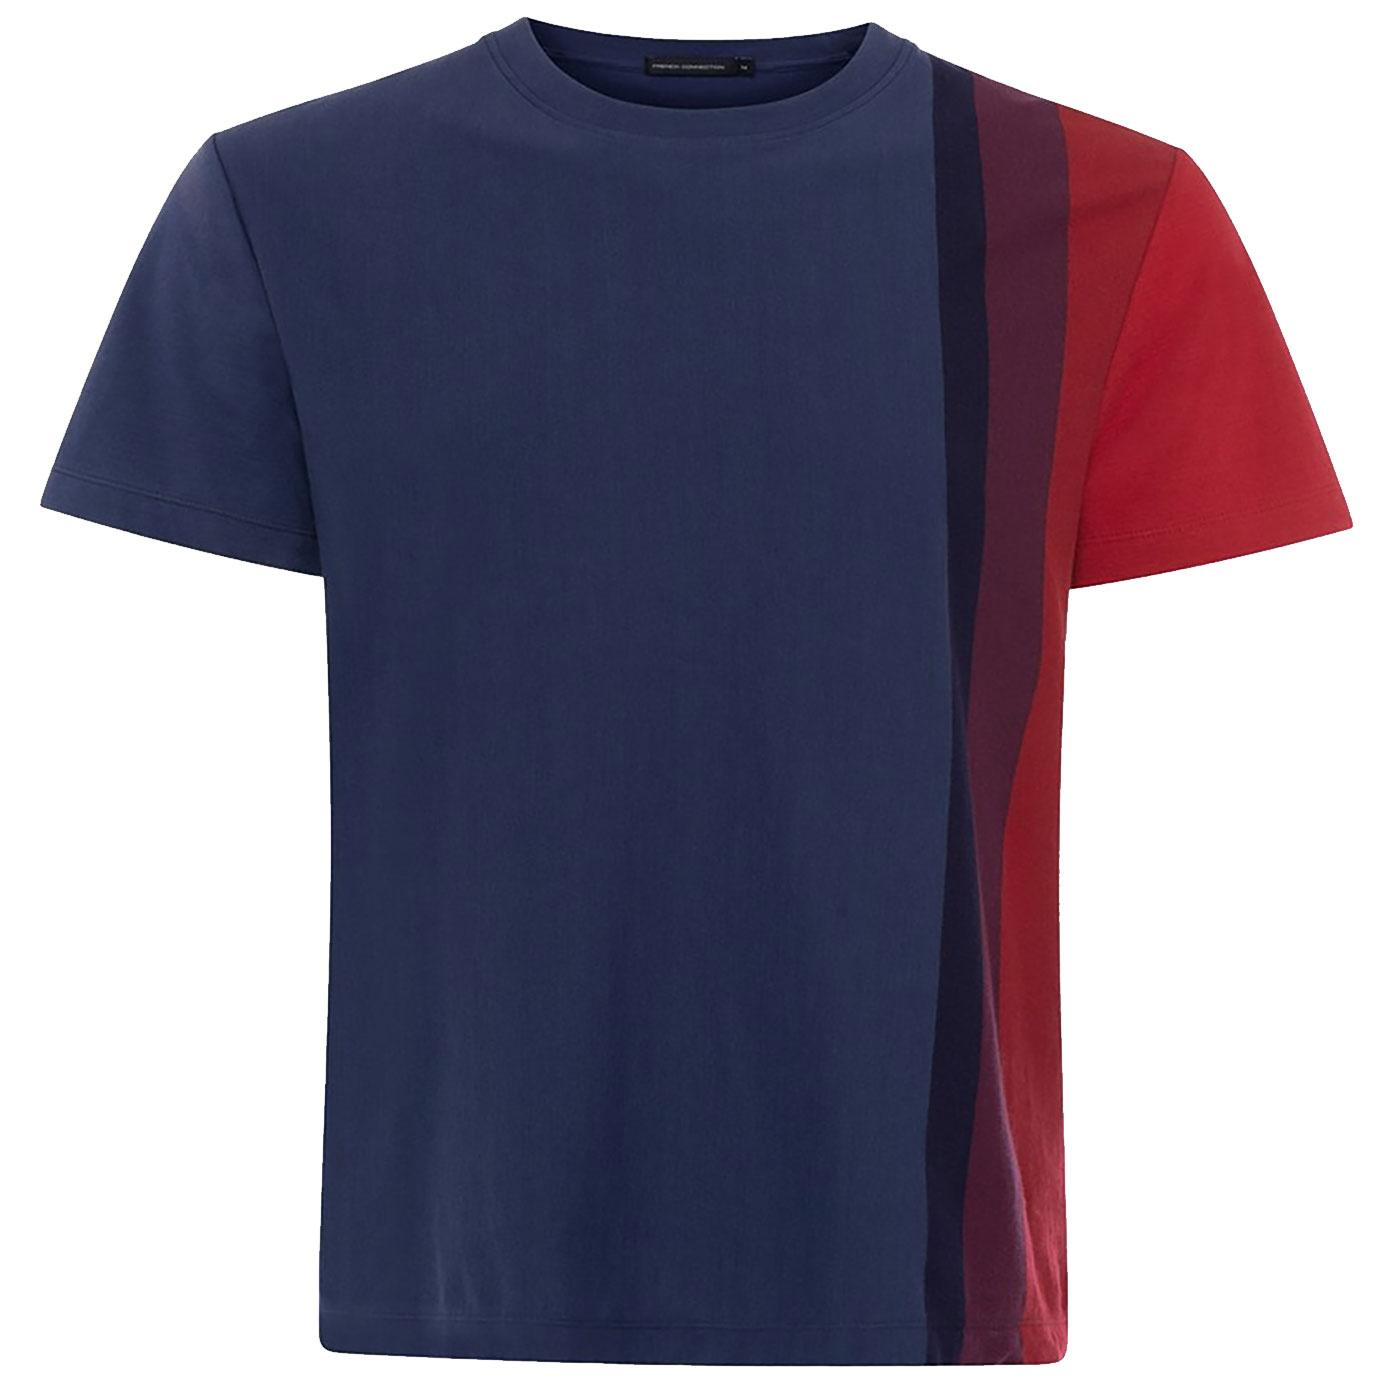 FRENCH CONNECTION Retro Gradient Stripe T-Shirt